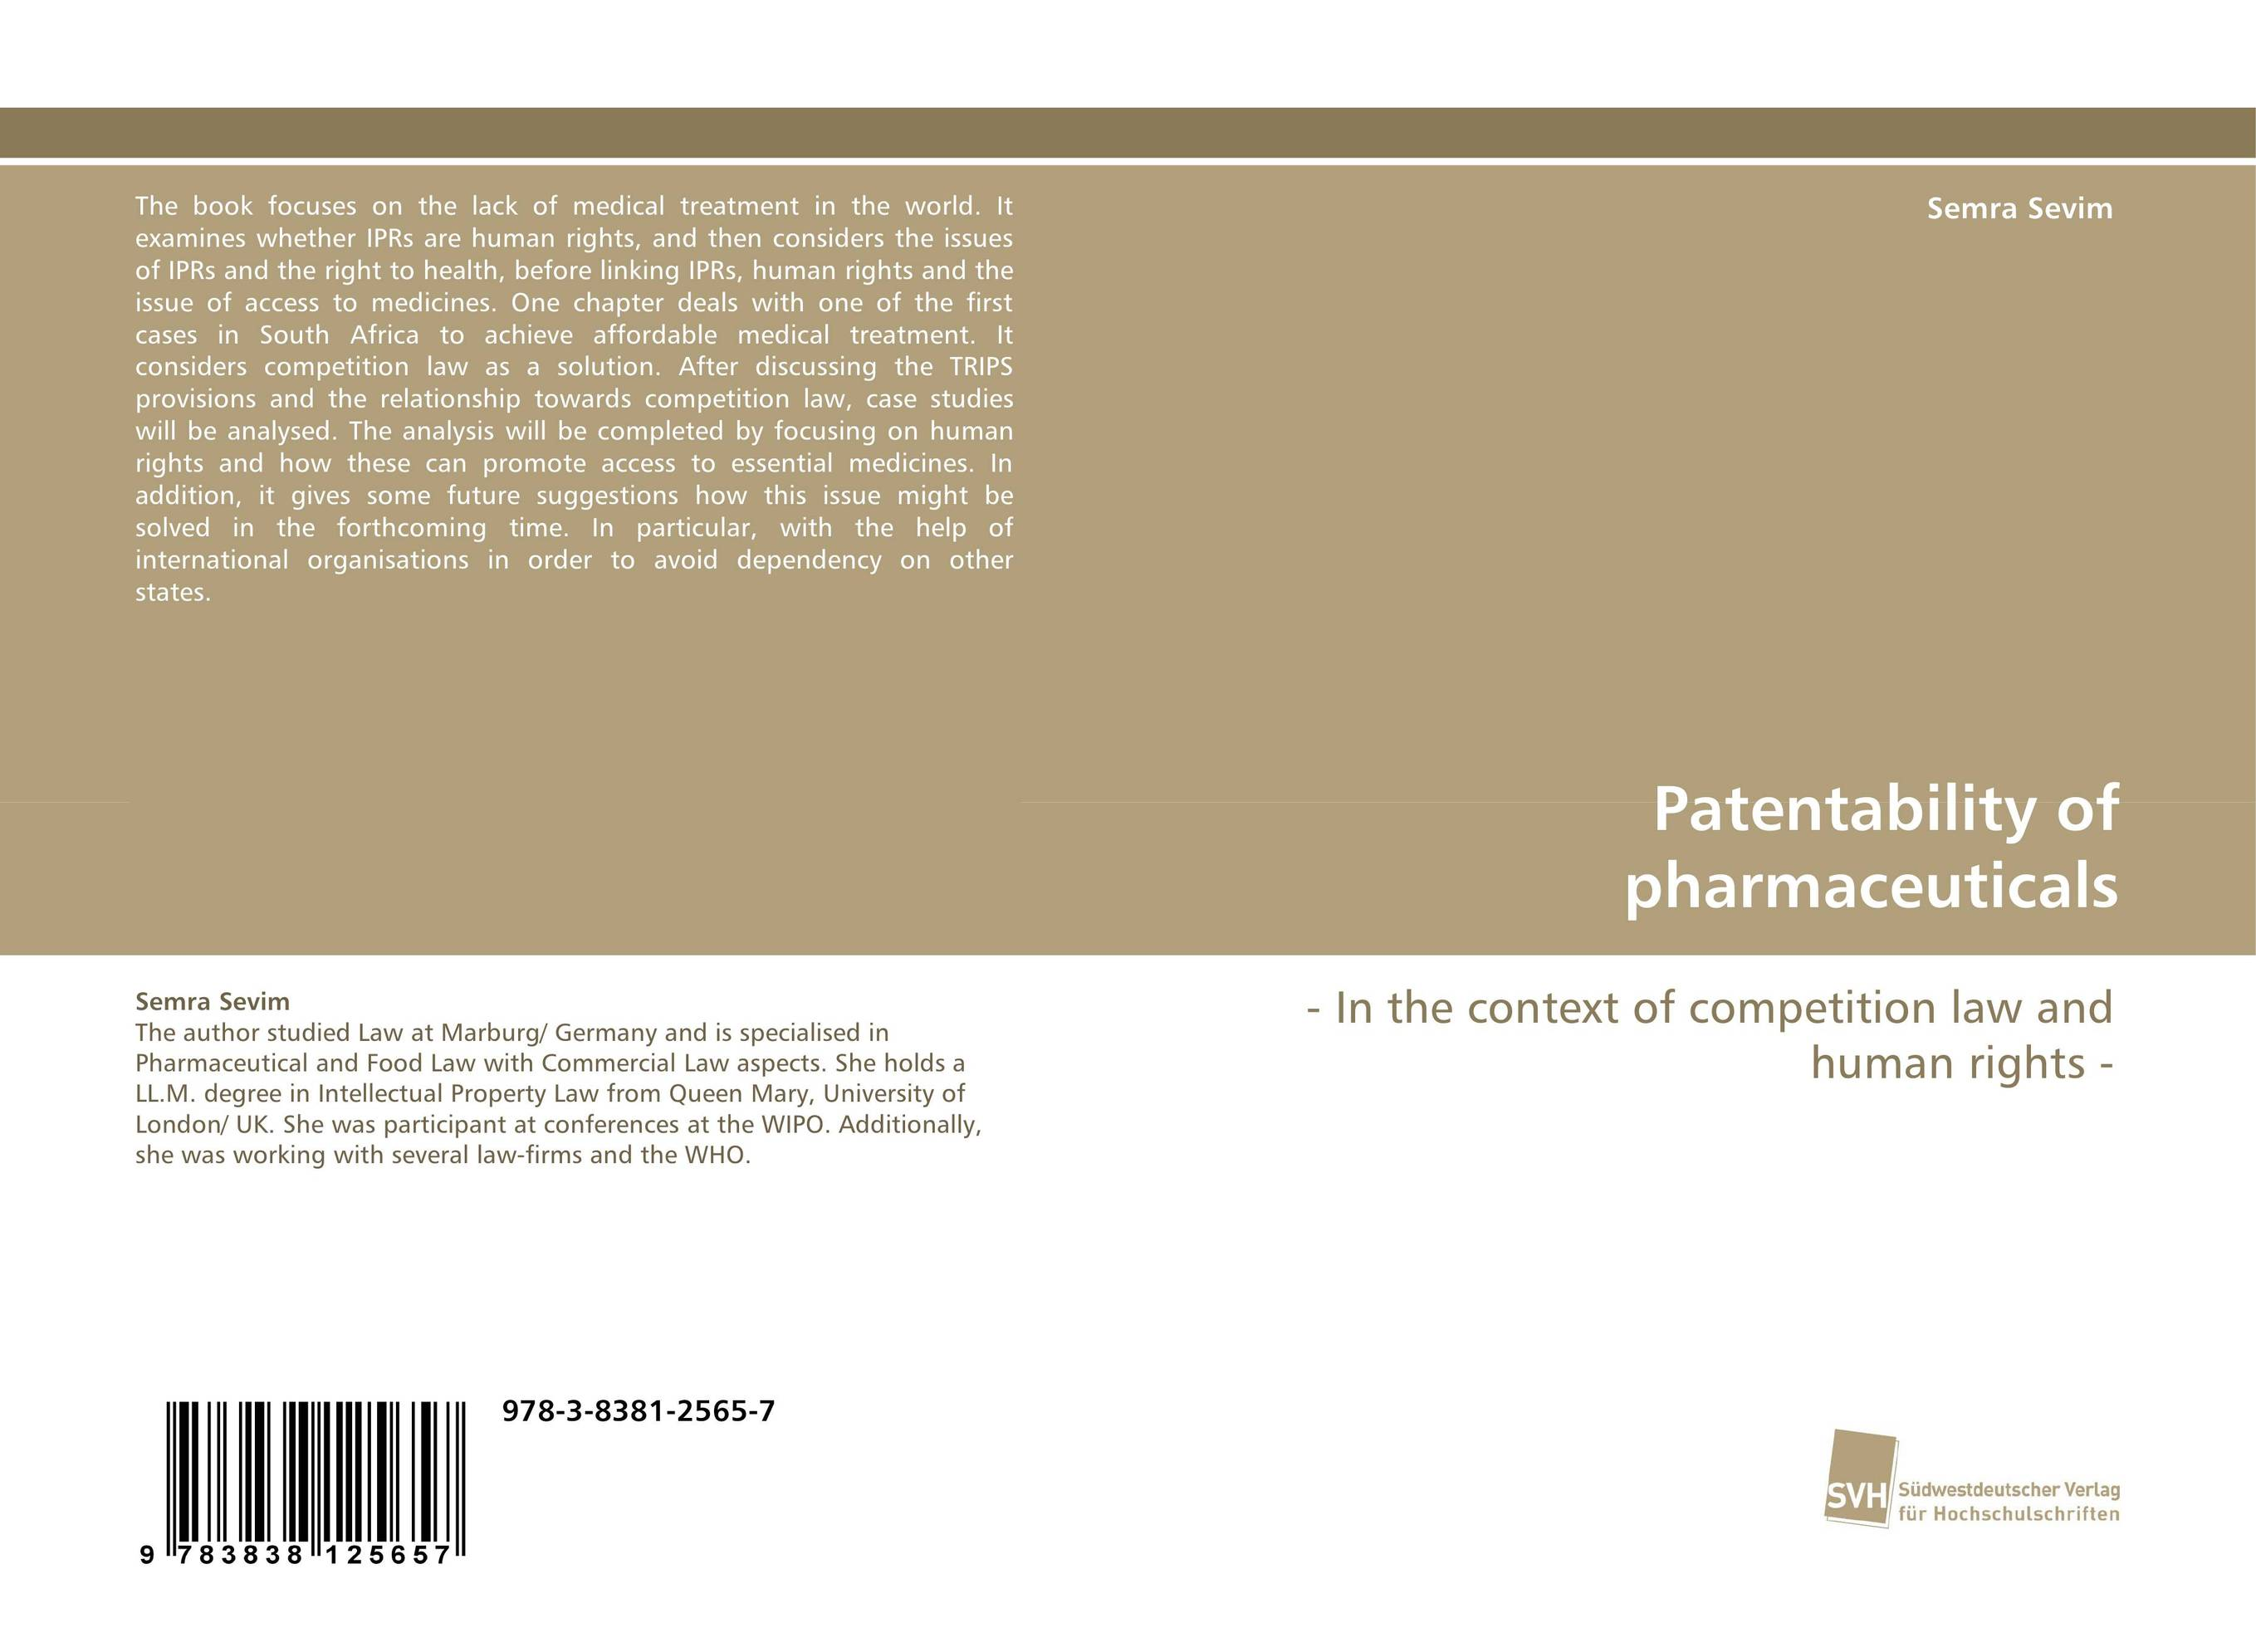 Patentability of pharmaceuticals